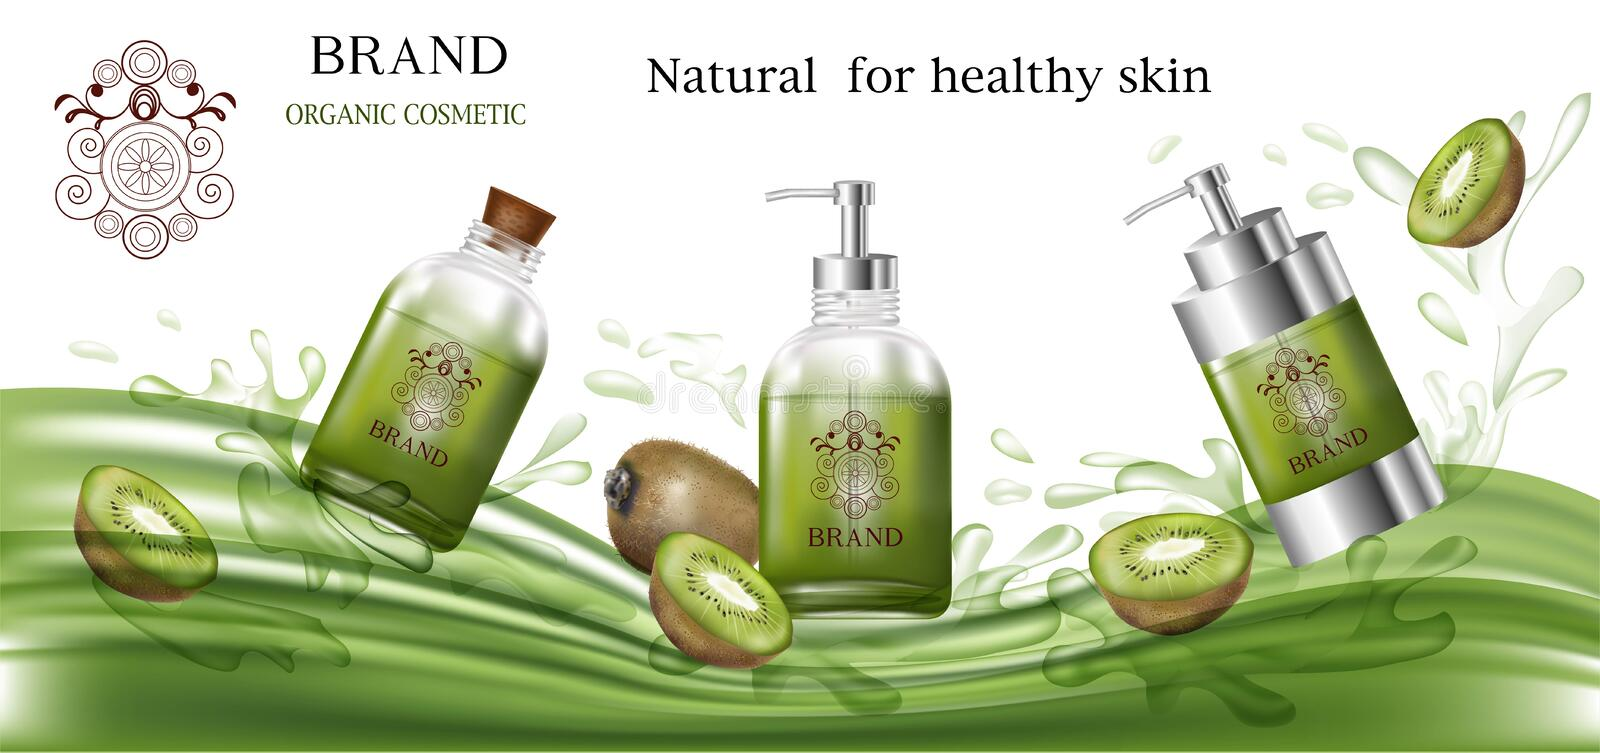 Cosmetic products green color with kiwi for organic. On water splash